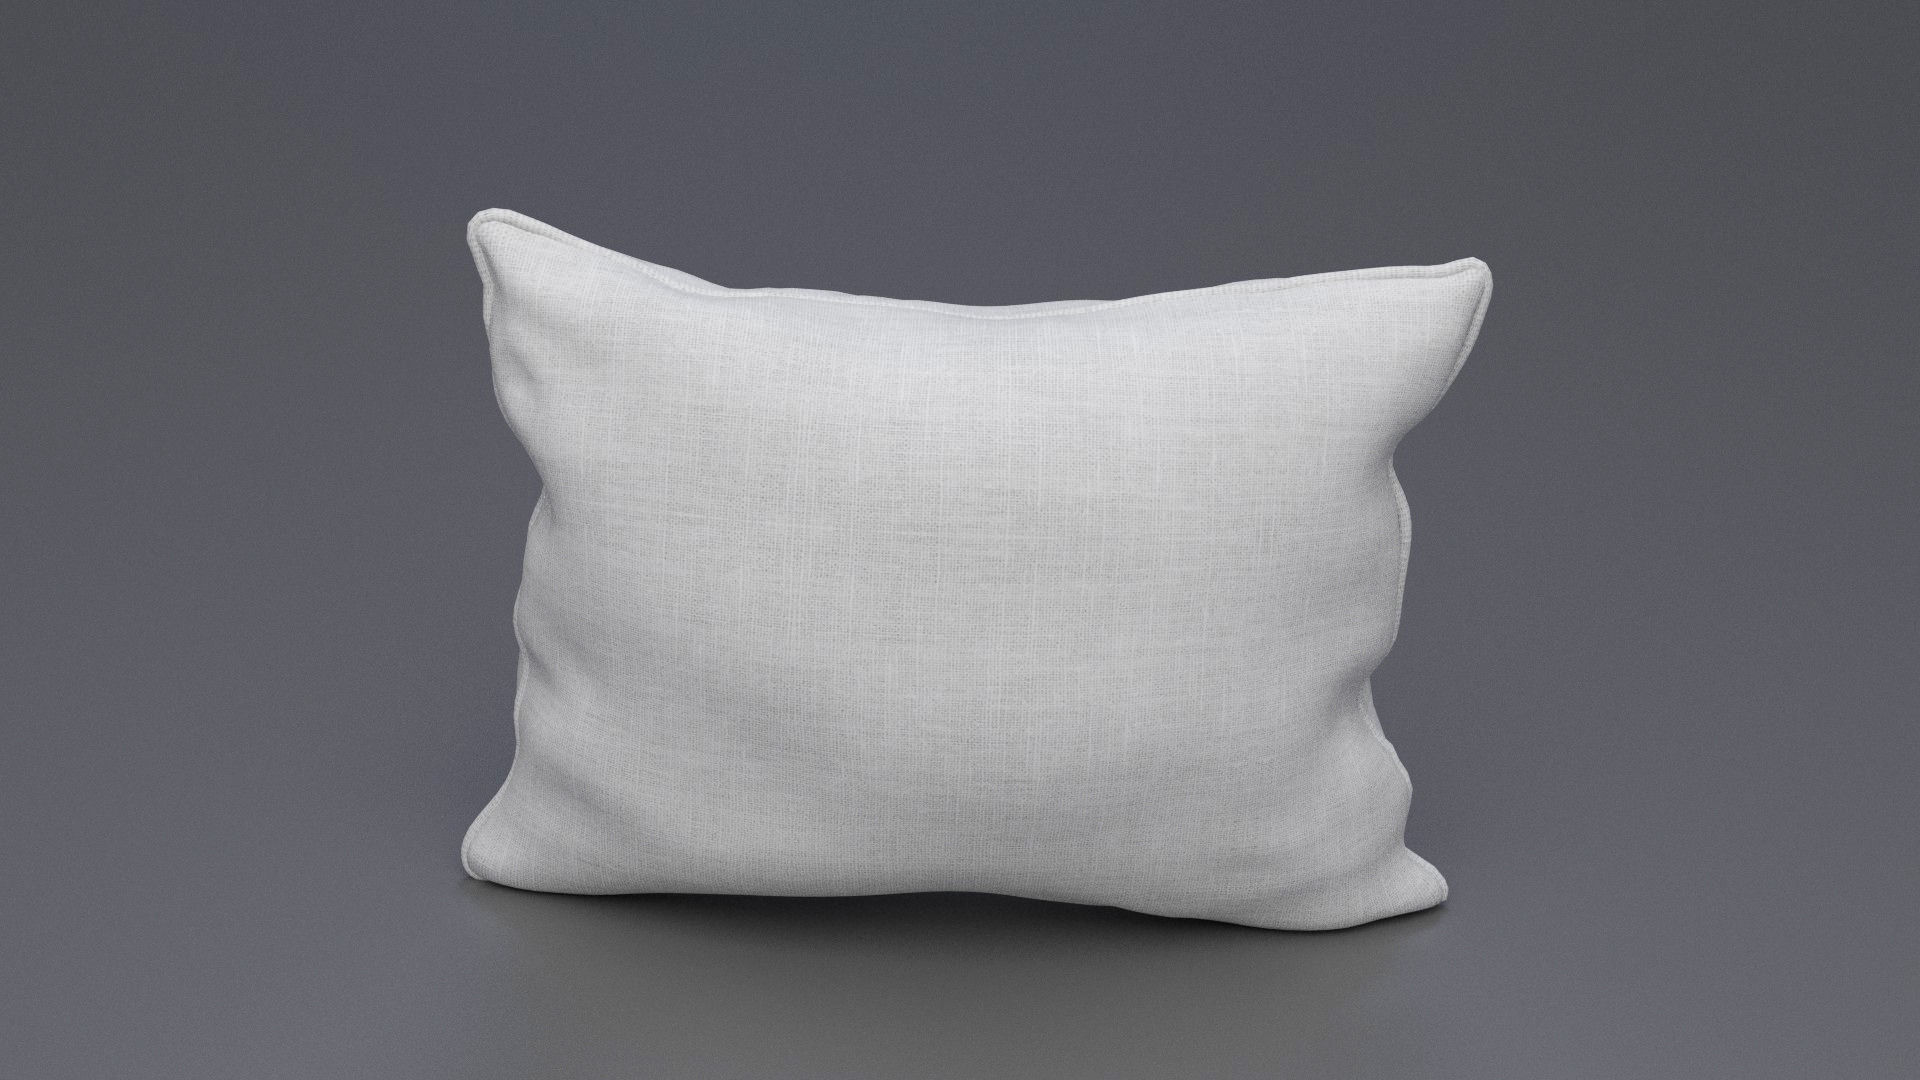 c42dc403c76648 3D model Piped Pillow | CGTrader